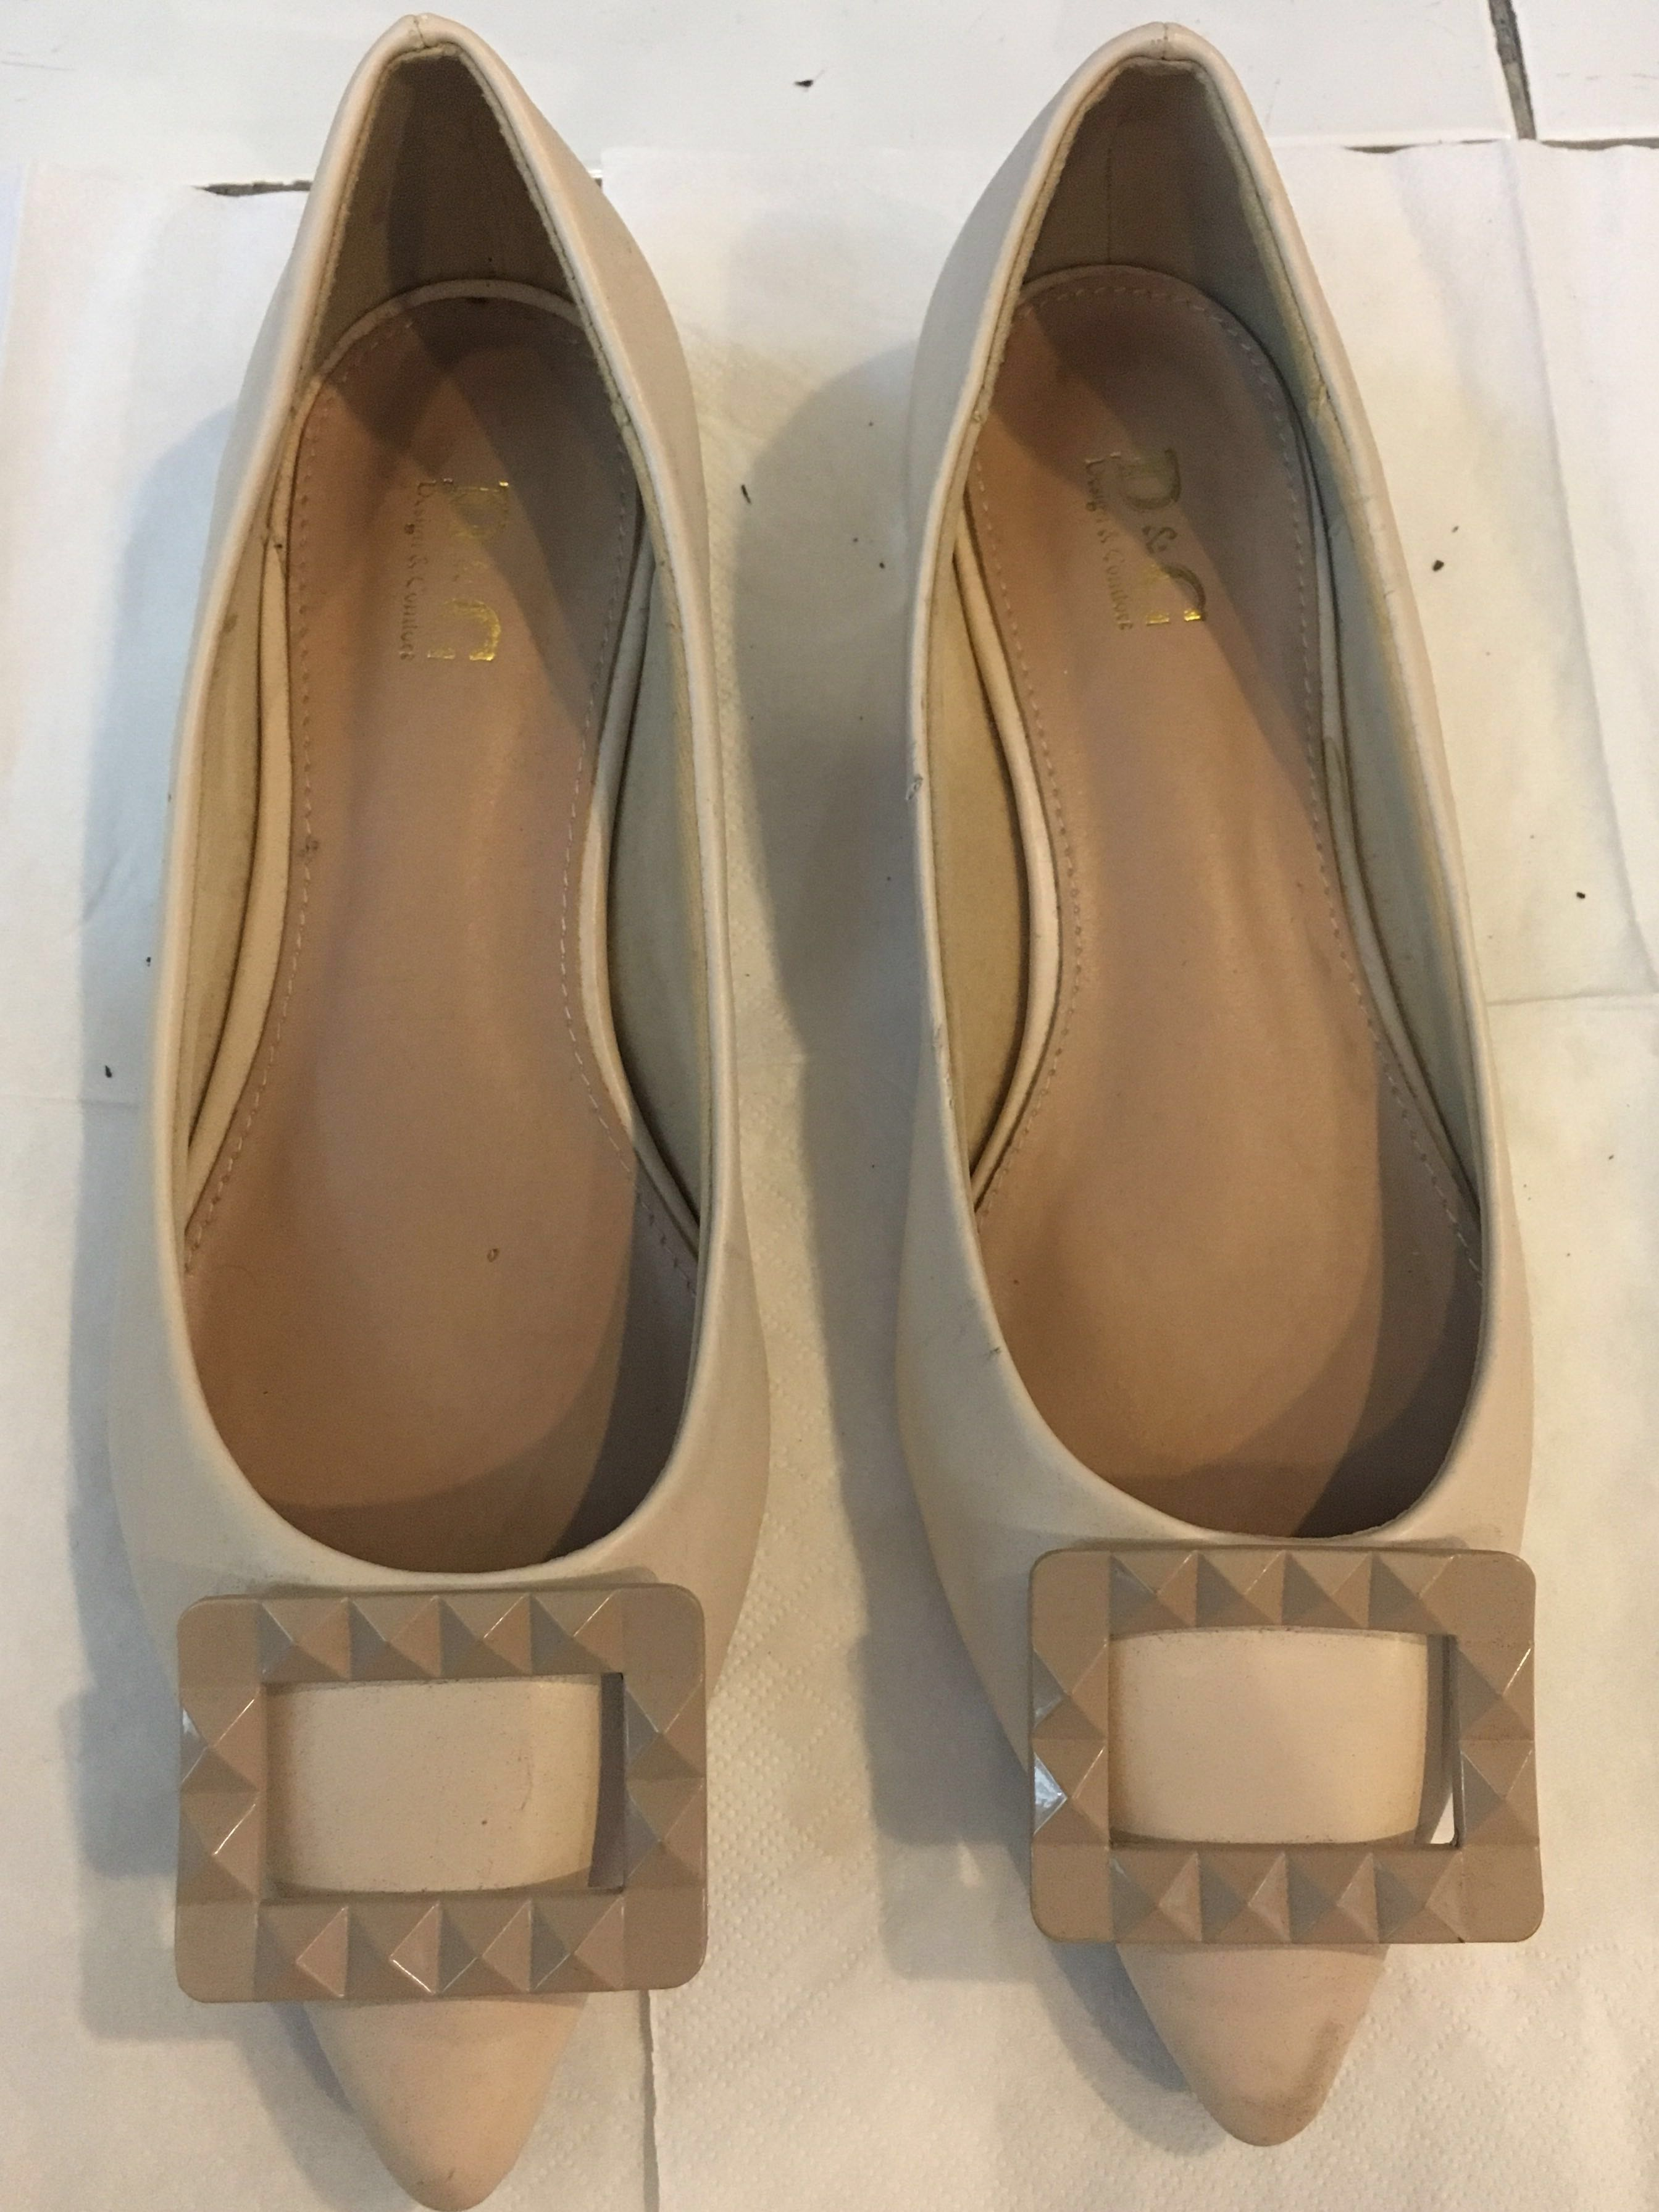 Unbranded Pointed Toe Flats in Nude